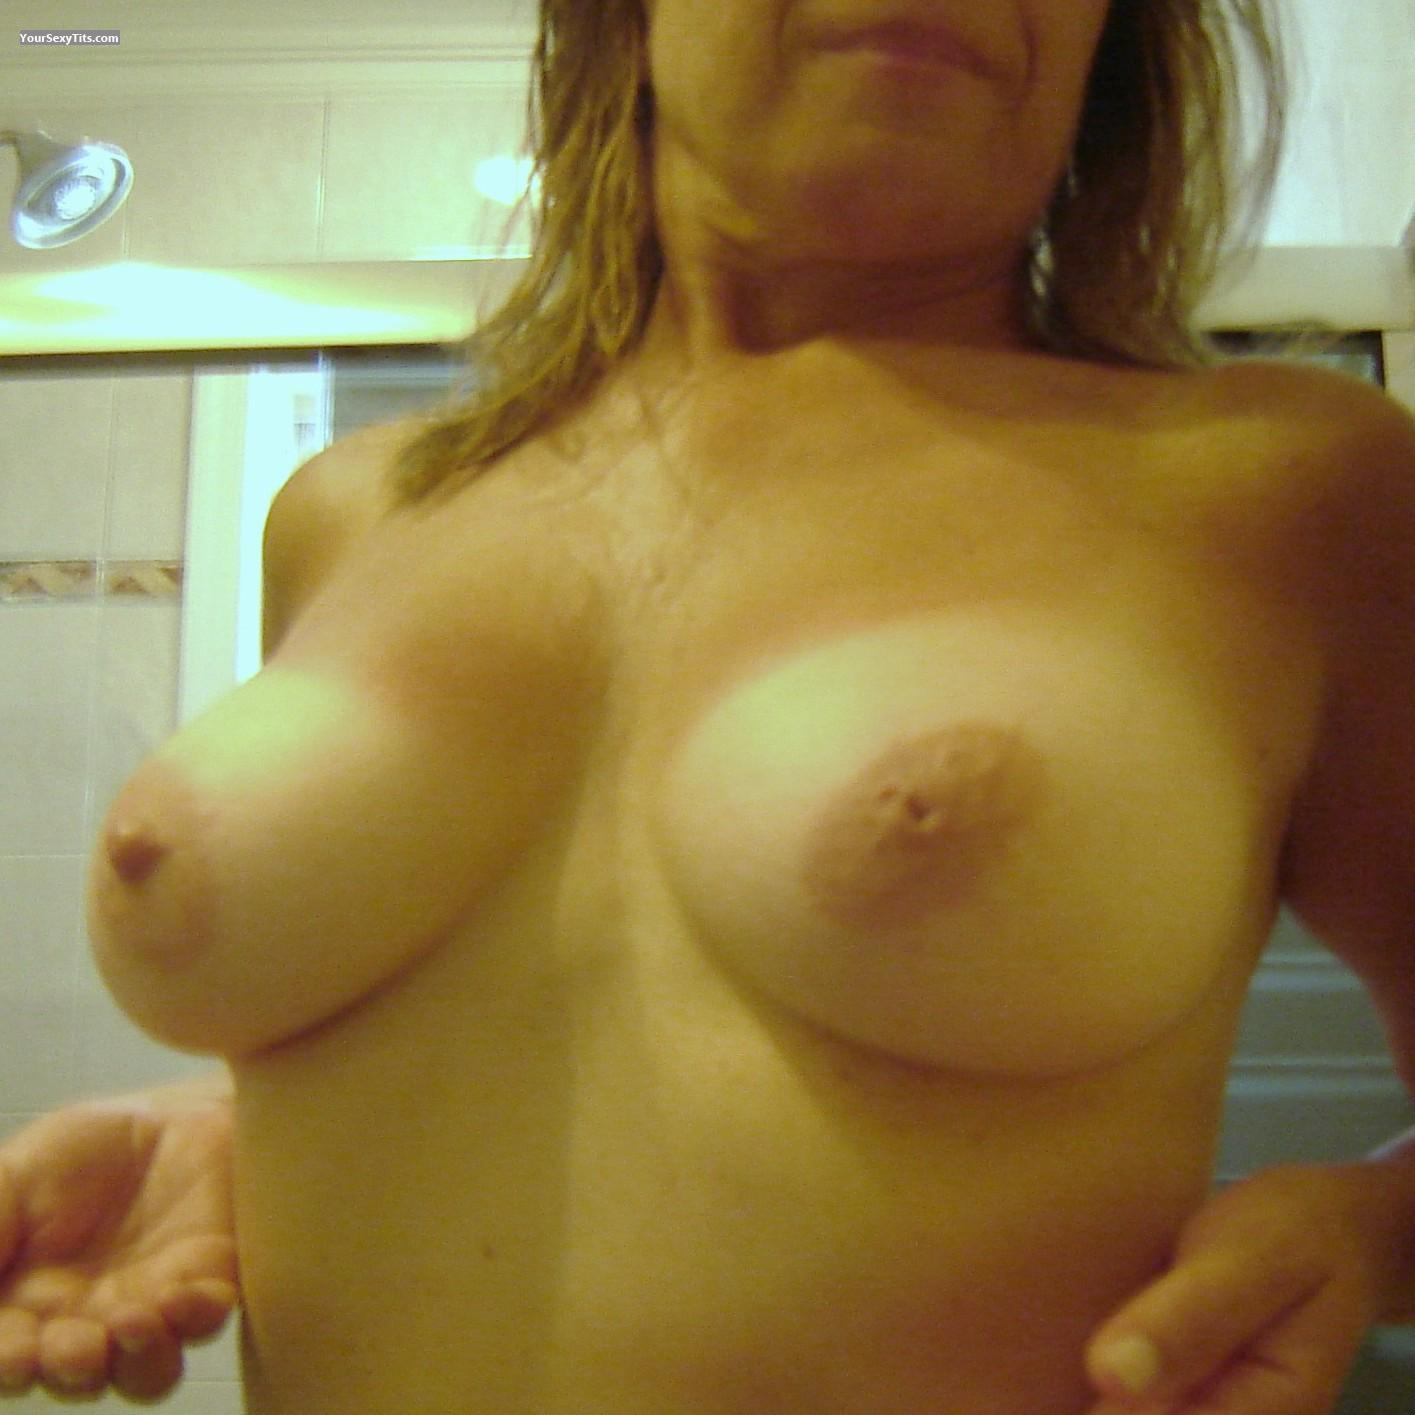 Medium Tits Nice Nips